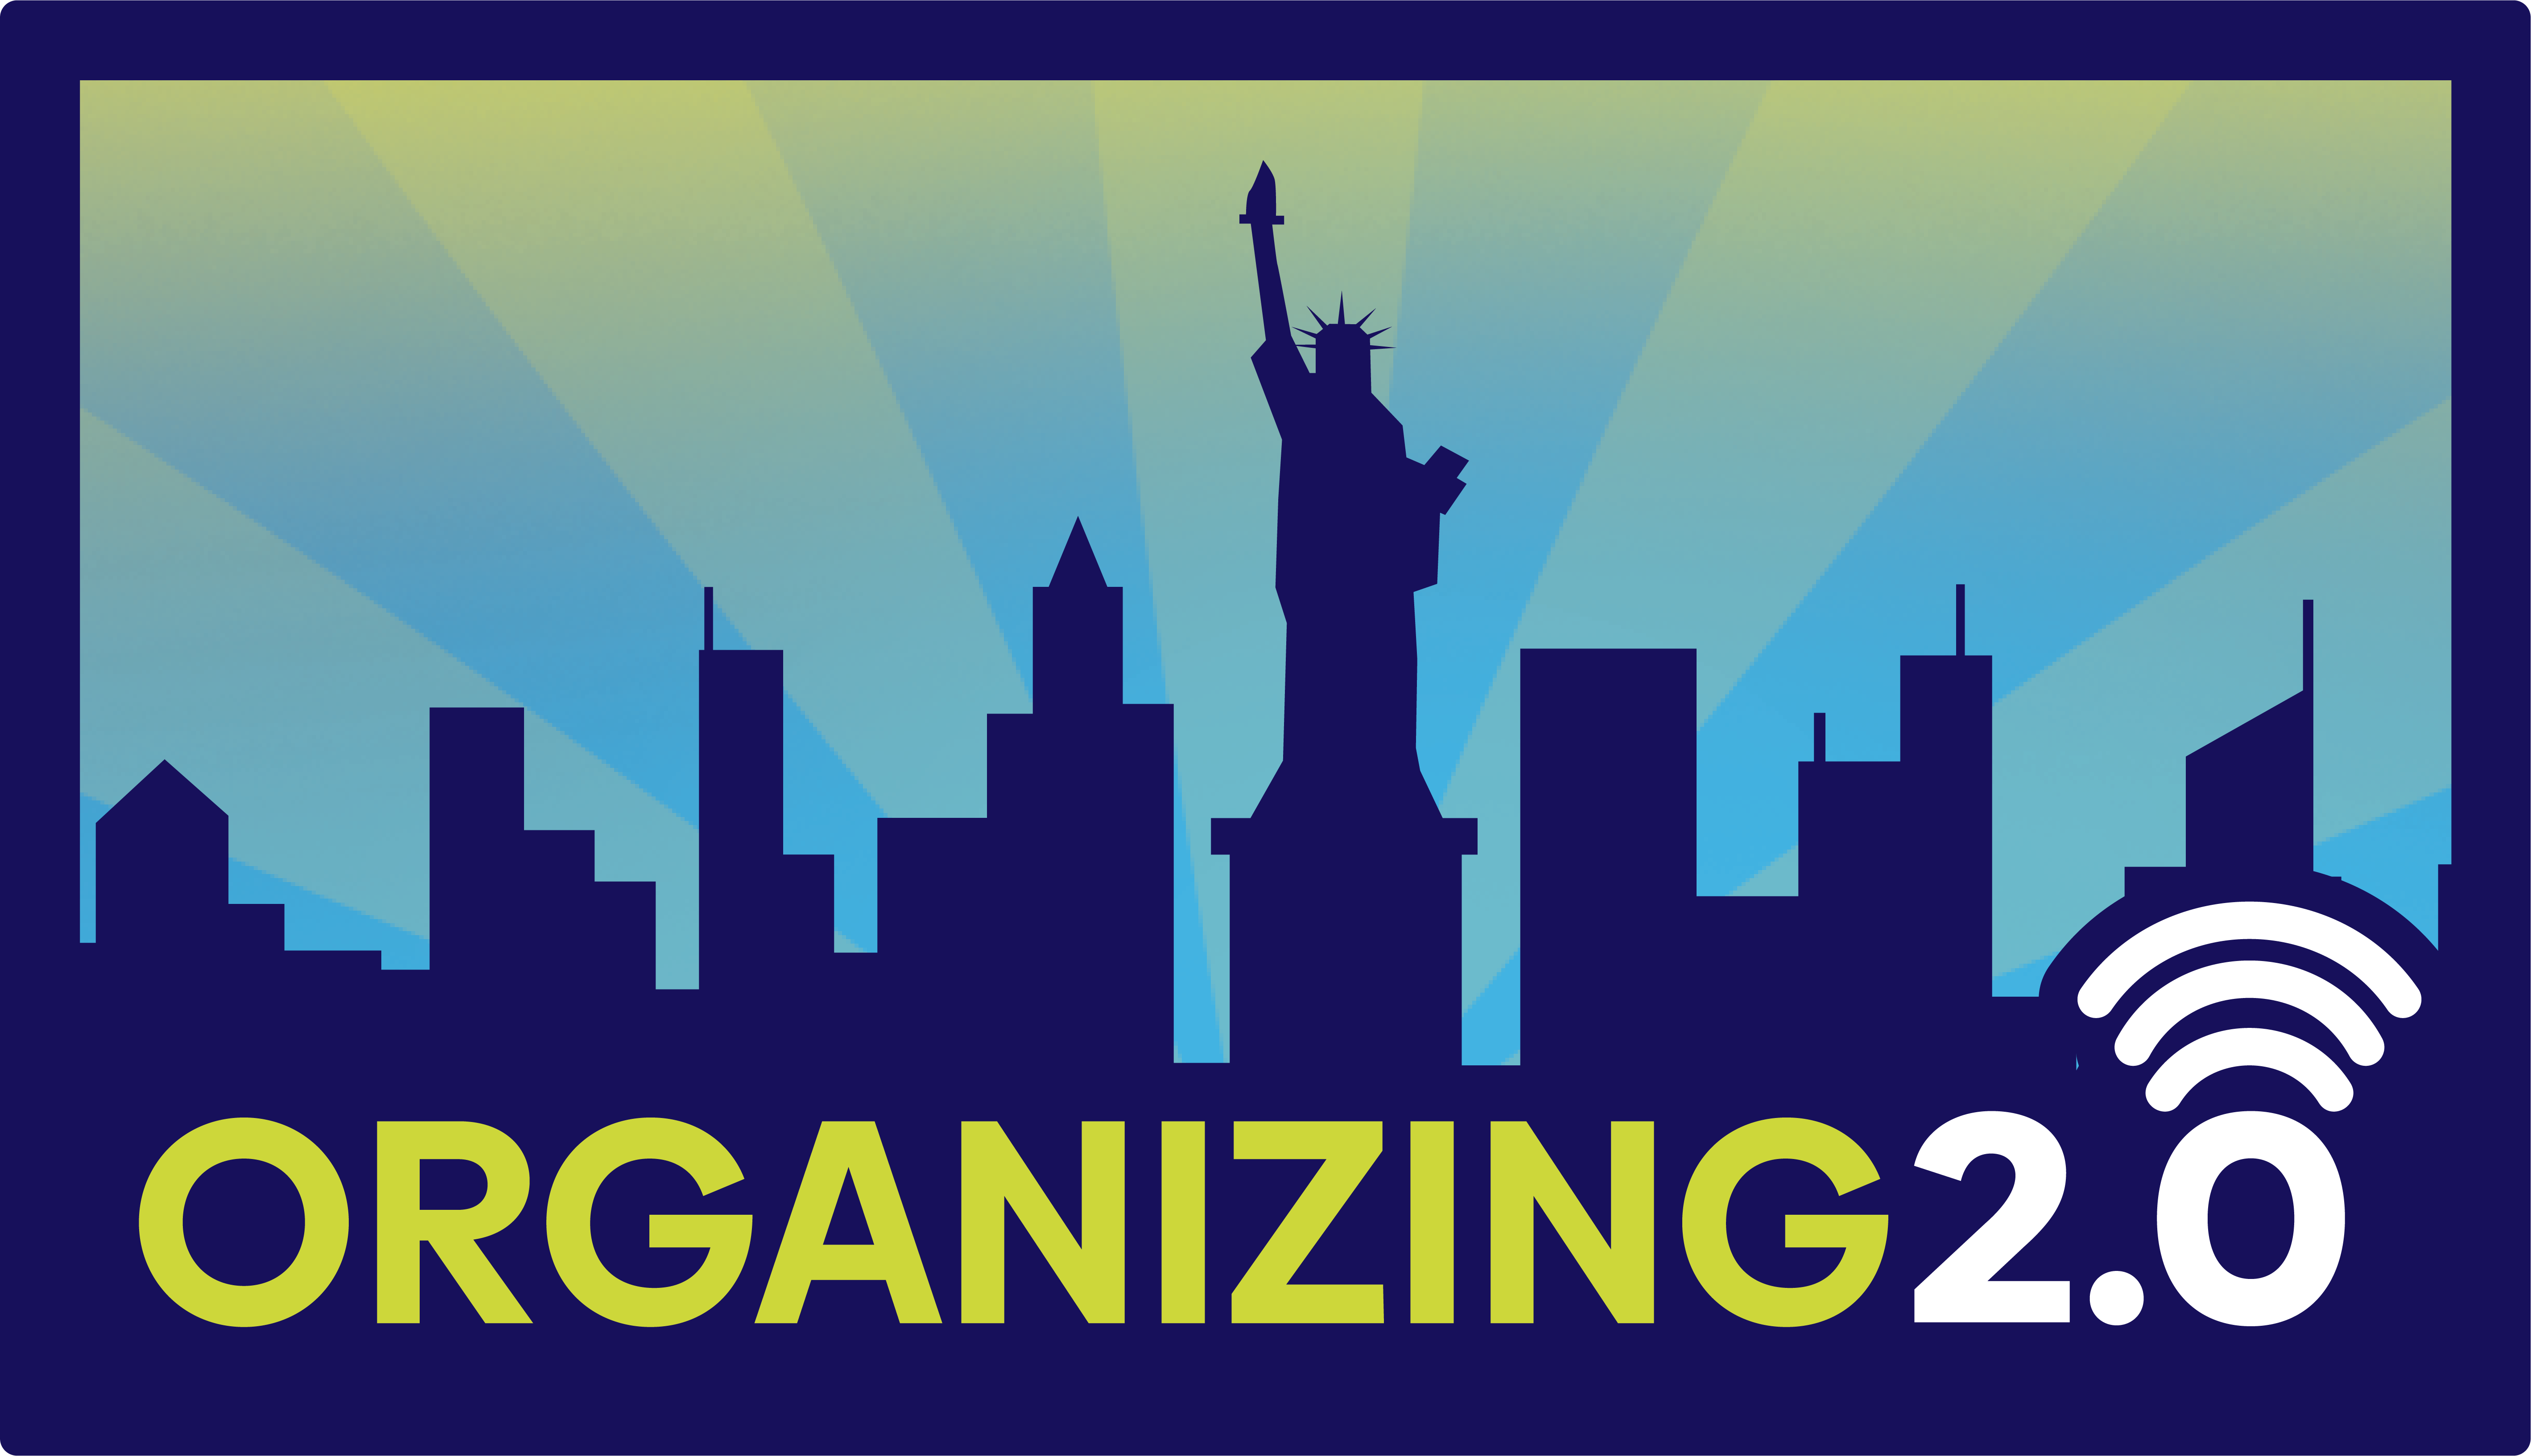 Organizing 2.0 Conference